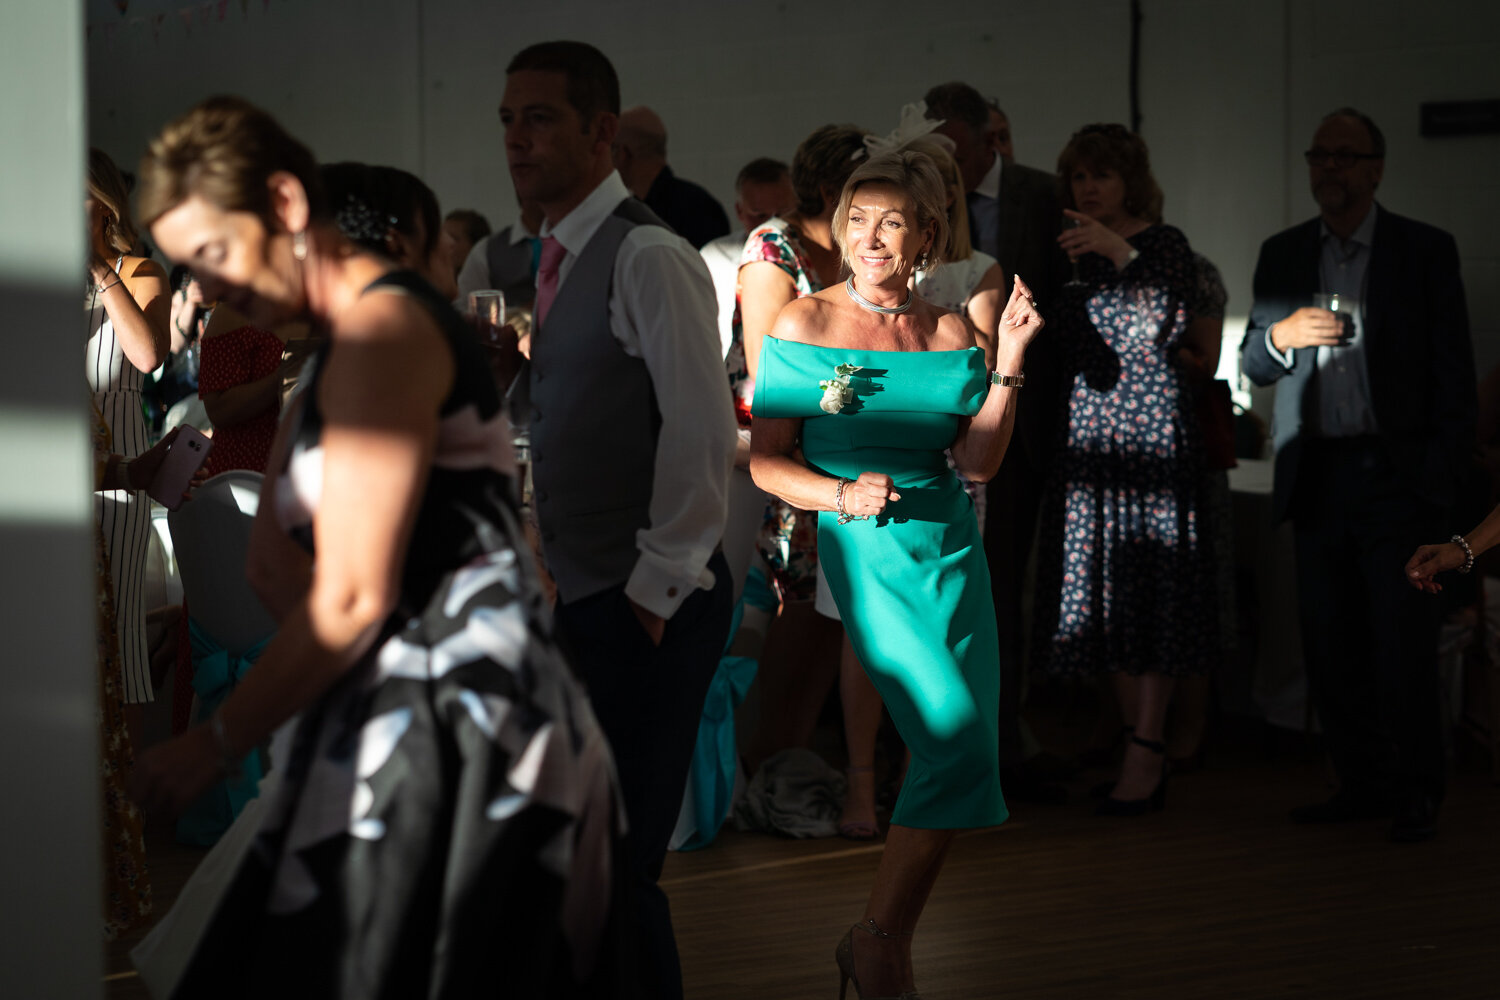 Wedding guests partying at a Royal Welsh Showground wedding